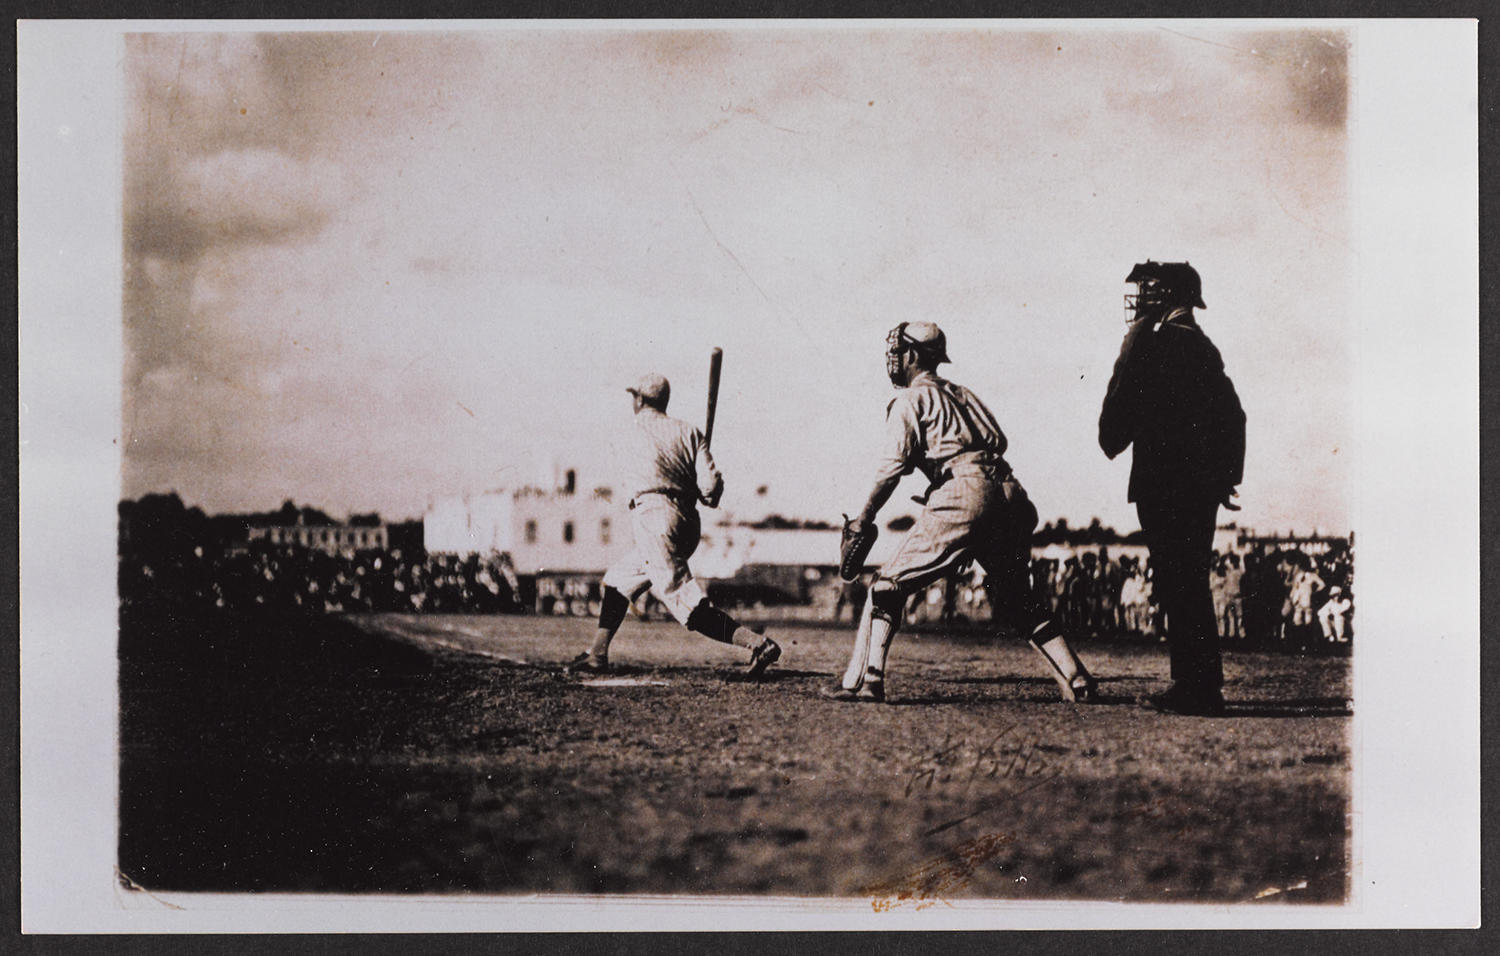 cristóbal torriente bests the bambino baseball hall of fame pictured above babe ruth at bat in almendares park when the new york giants